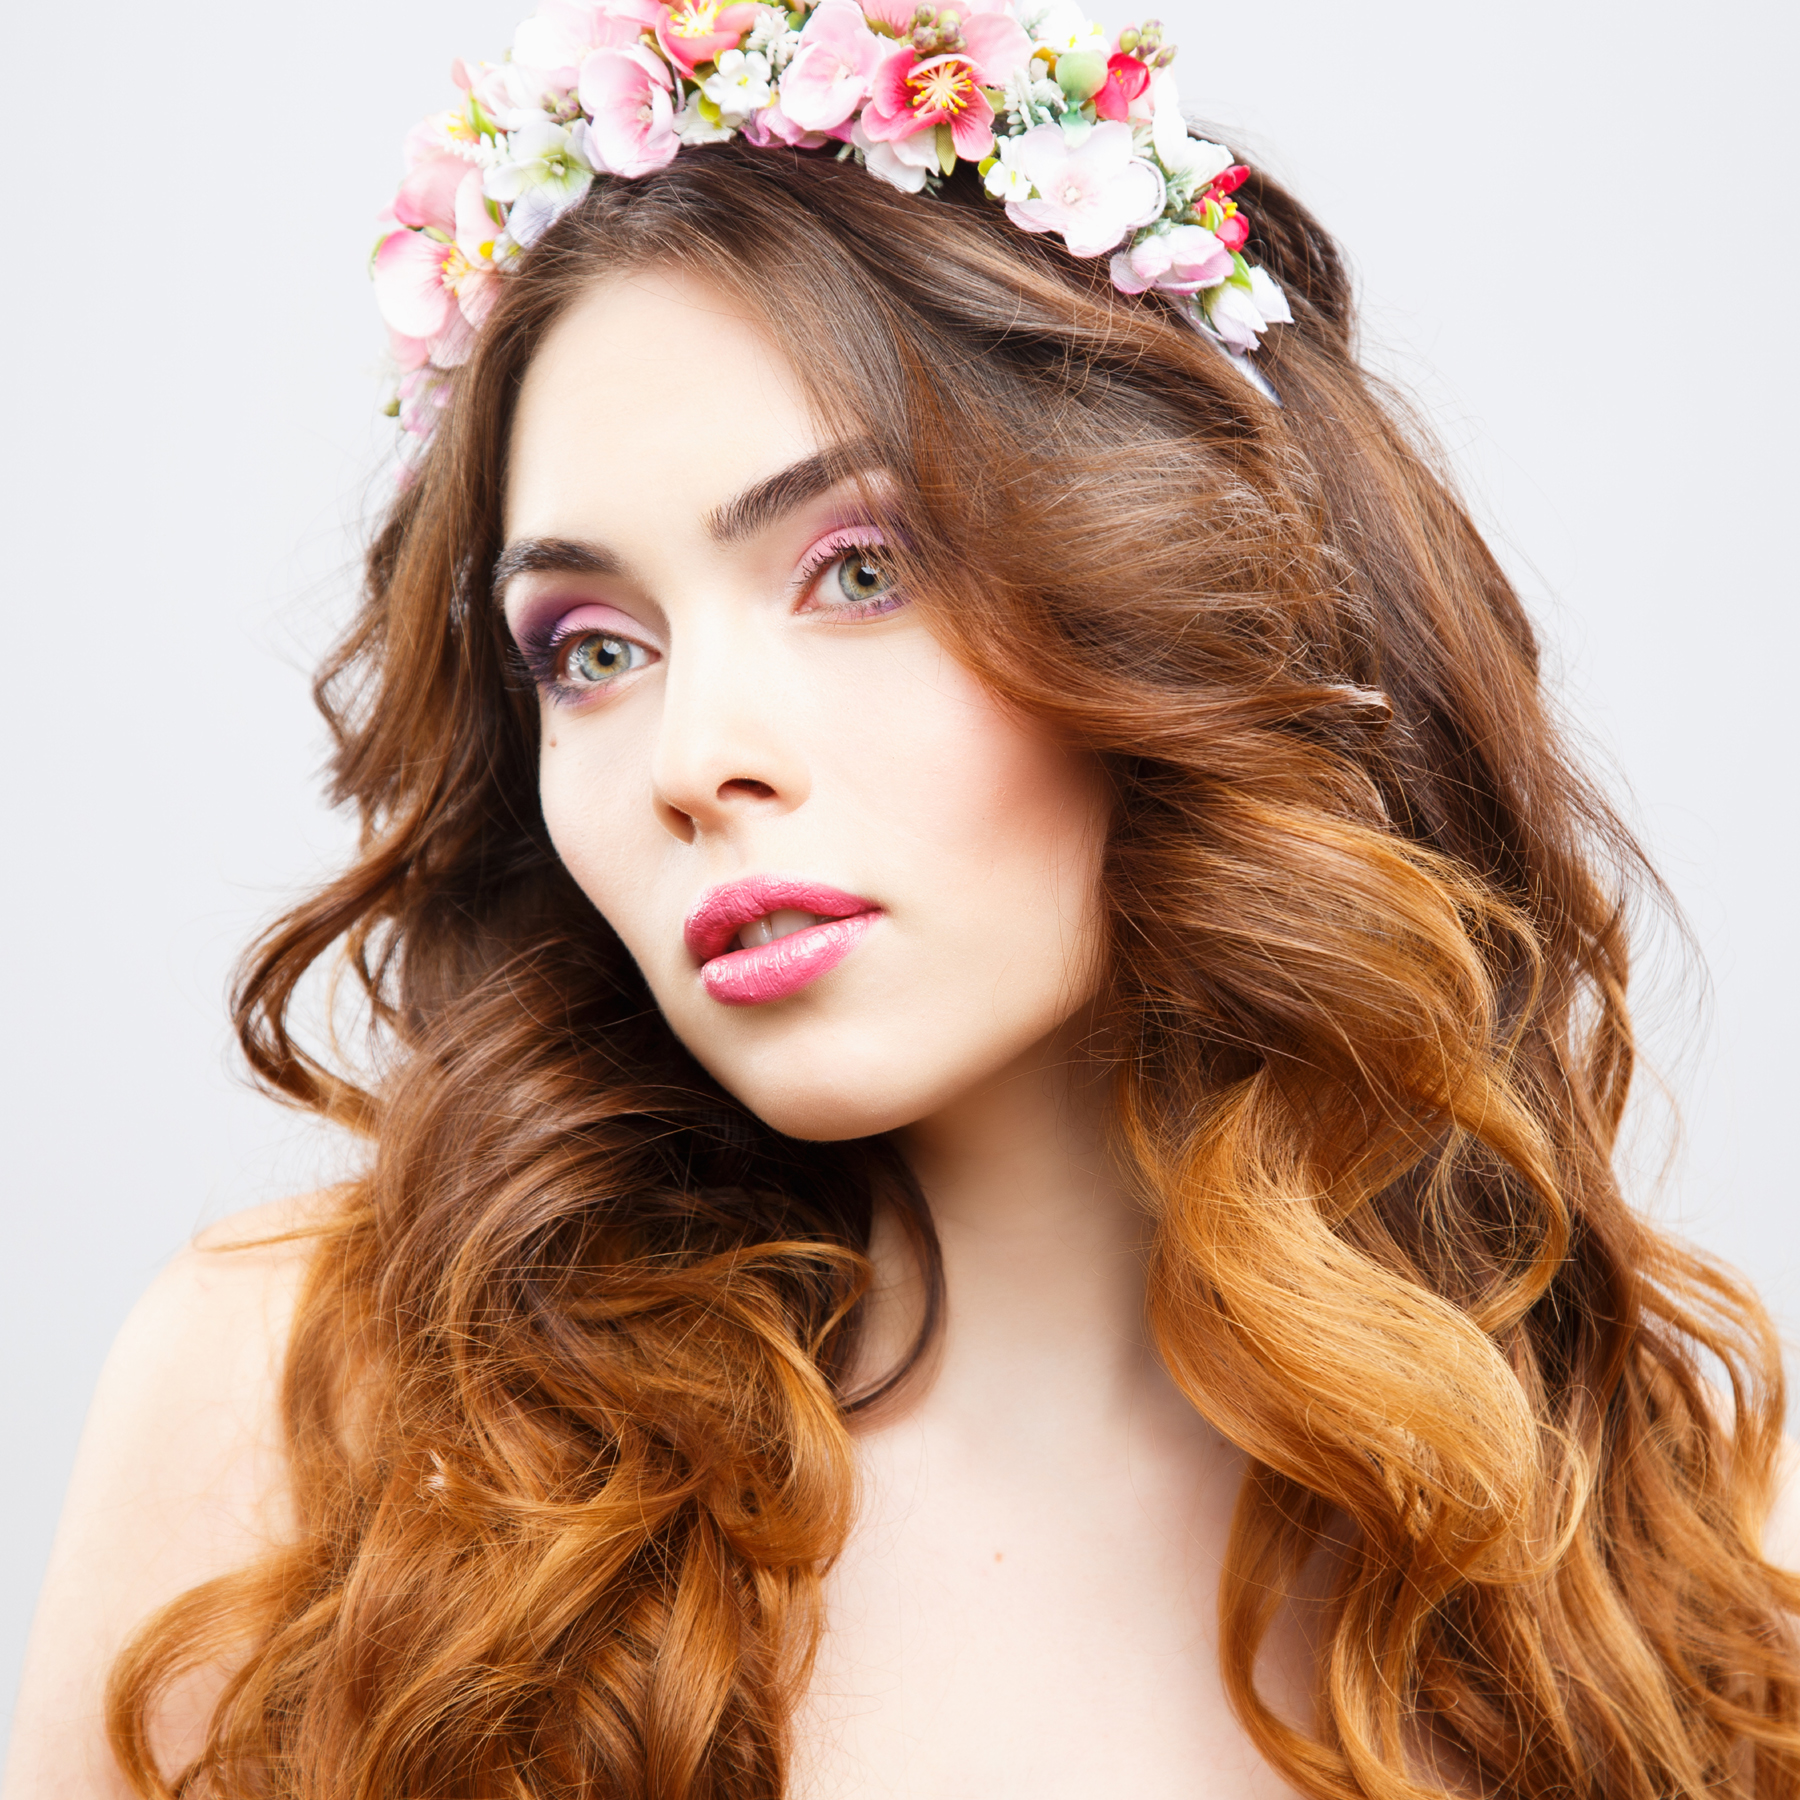 Flower tiara hair beauty characters 52171